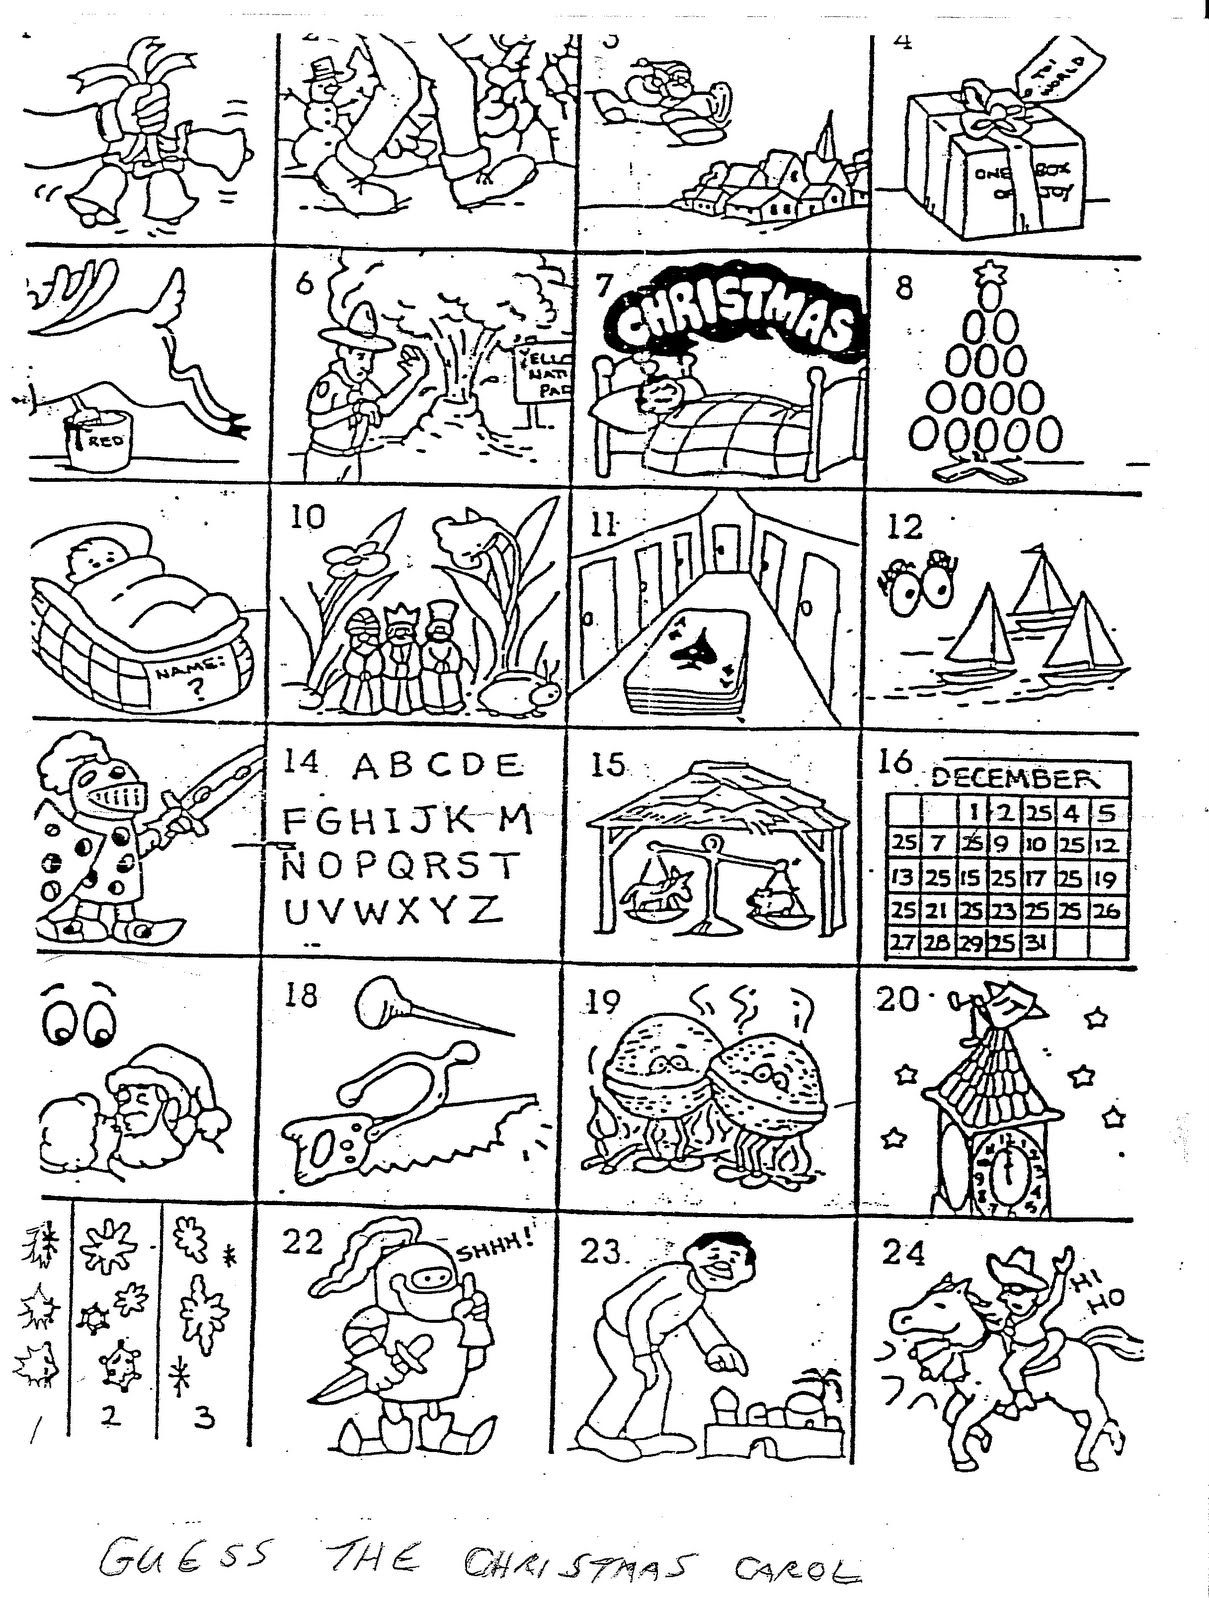 Can You Name The Christmas Carol In Each Box? - That Bloomin